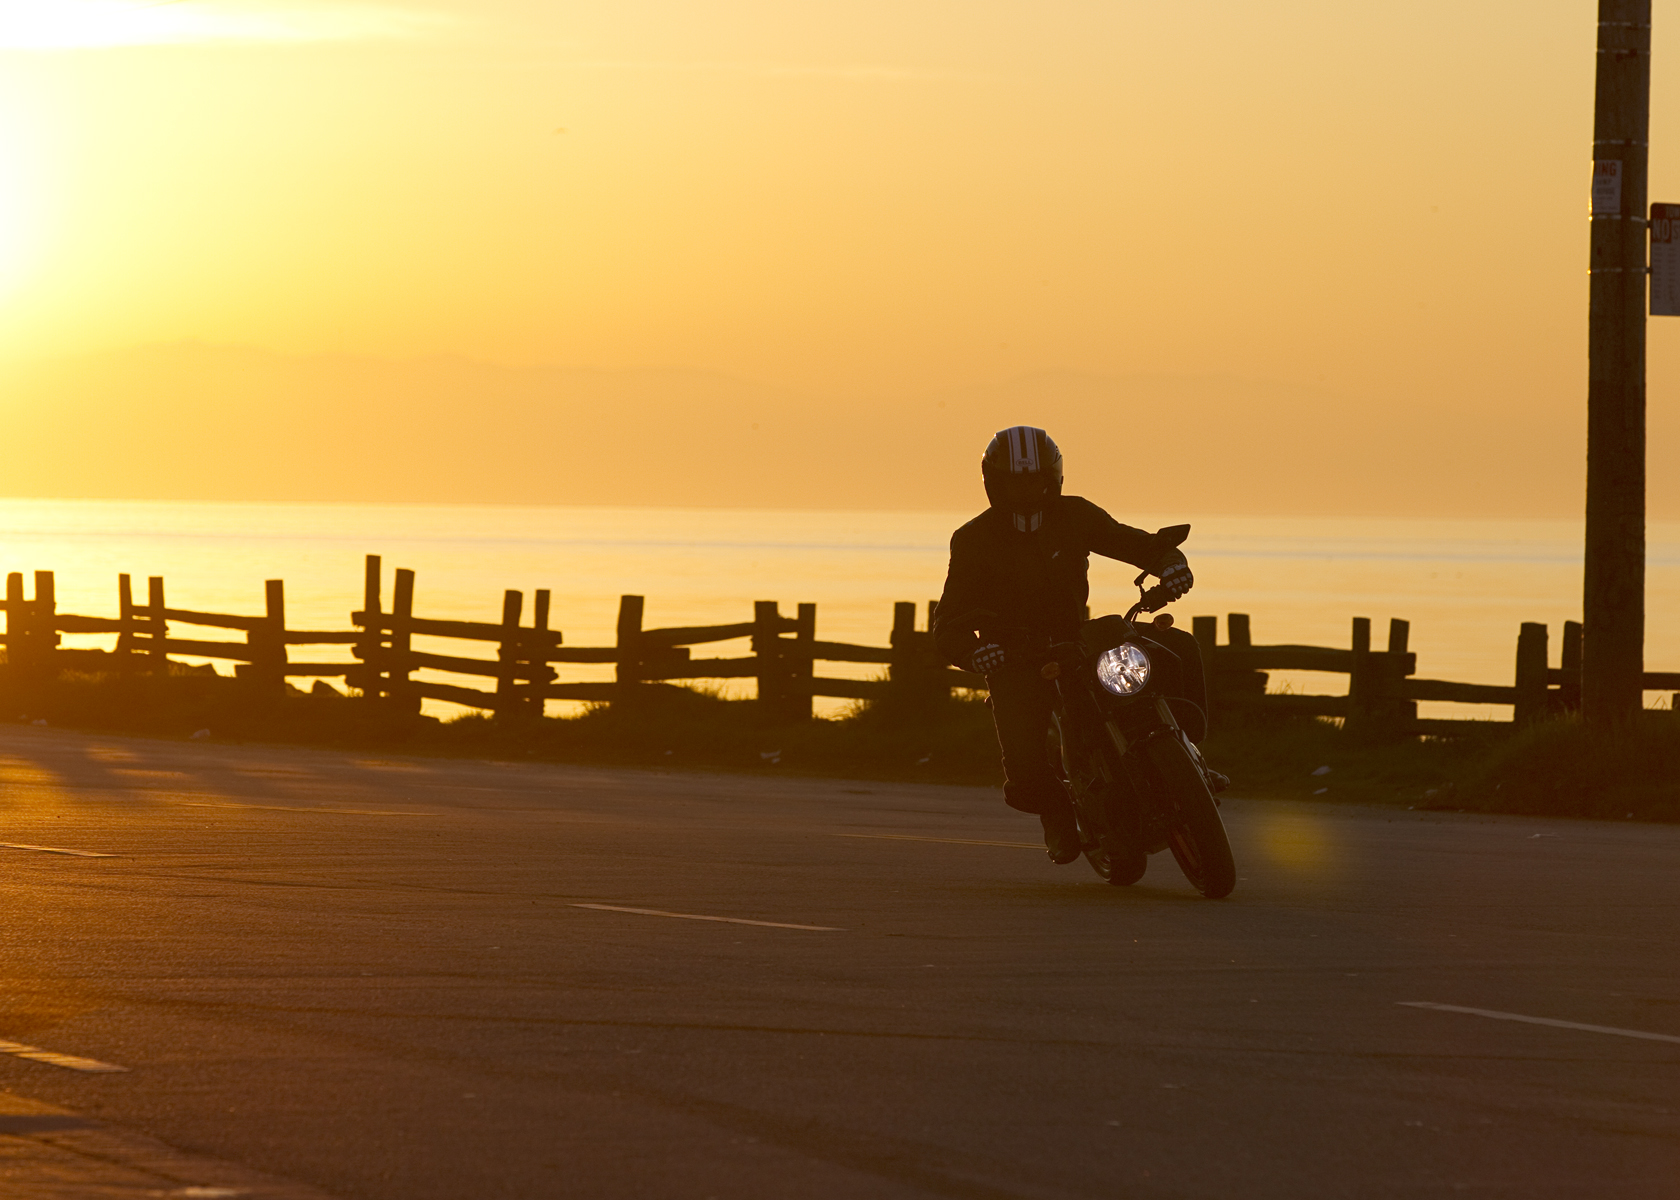 2011 Zero S Electric Motorcycle: Cruising at Sunset, Pacific Ocean View